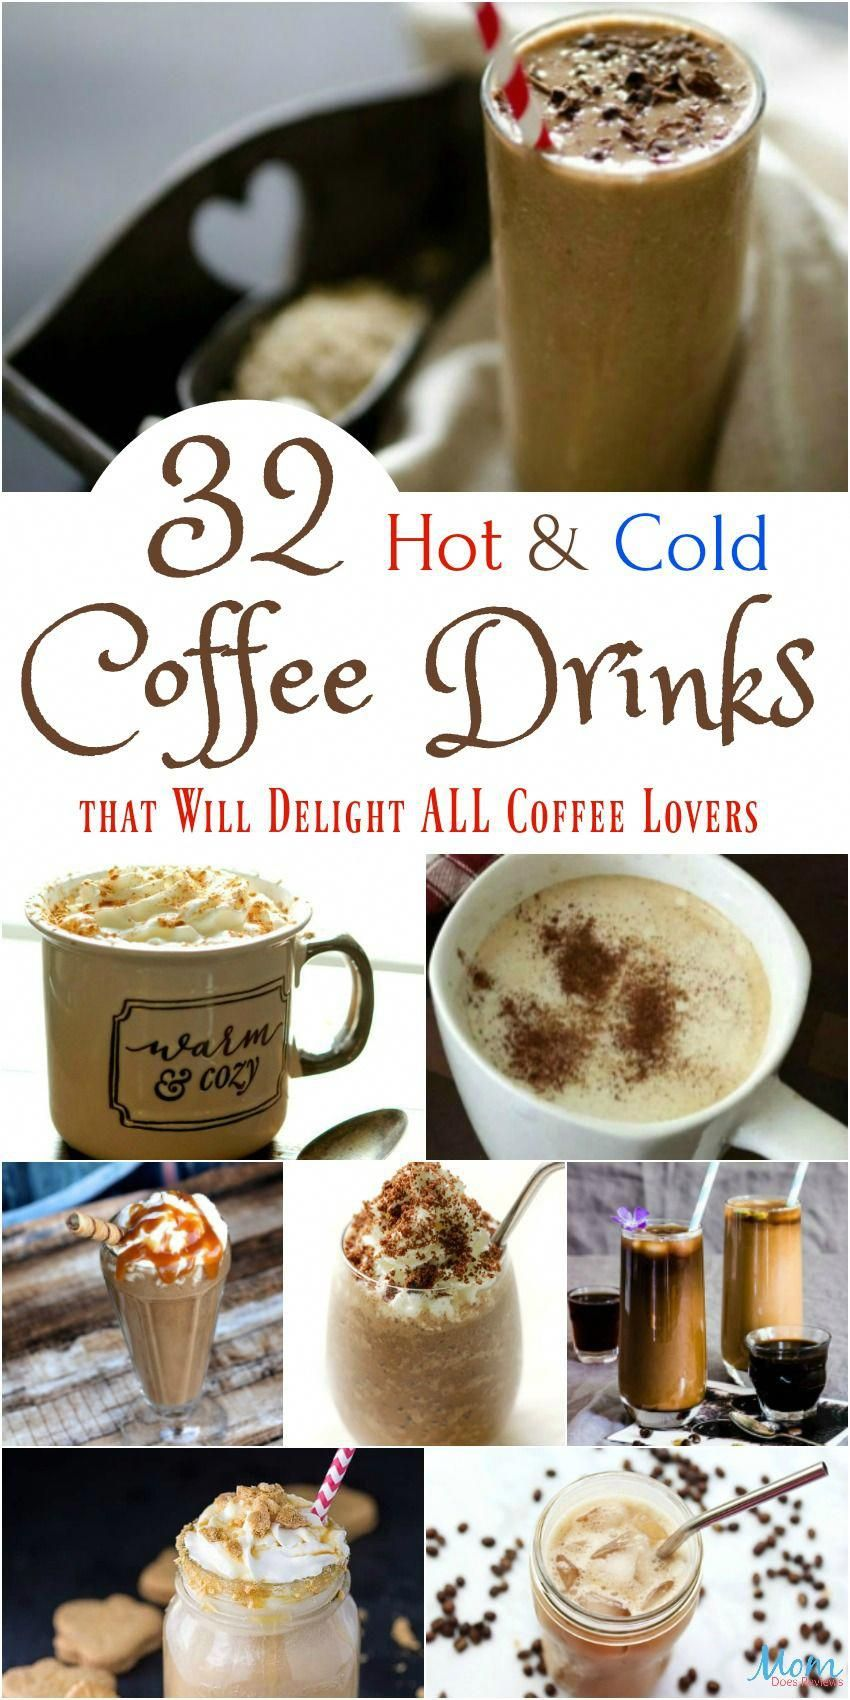 32 Hot & Cold Coffee Drinks that Will Delight ALL Coffee